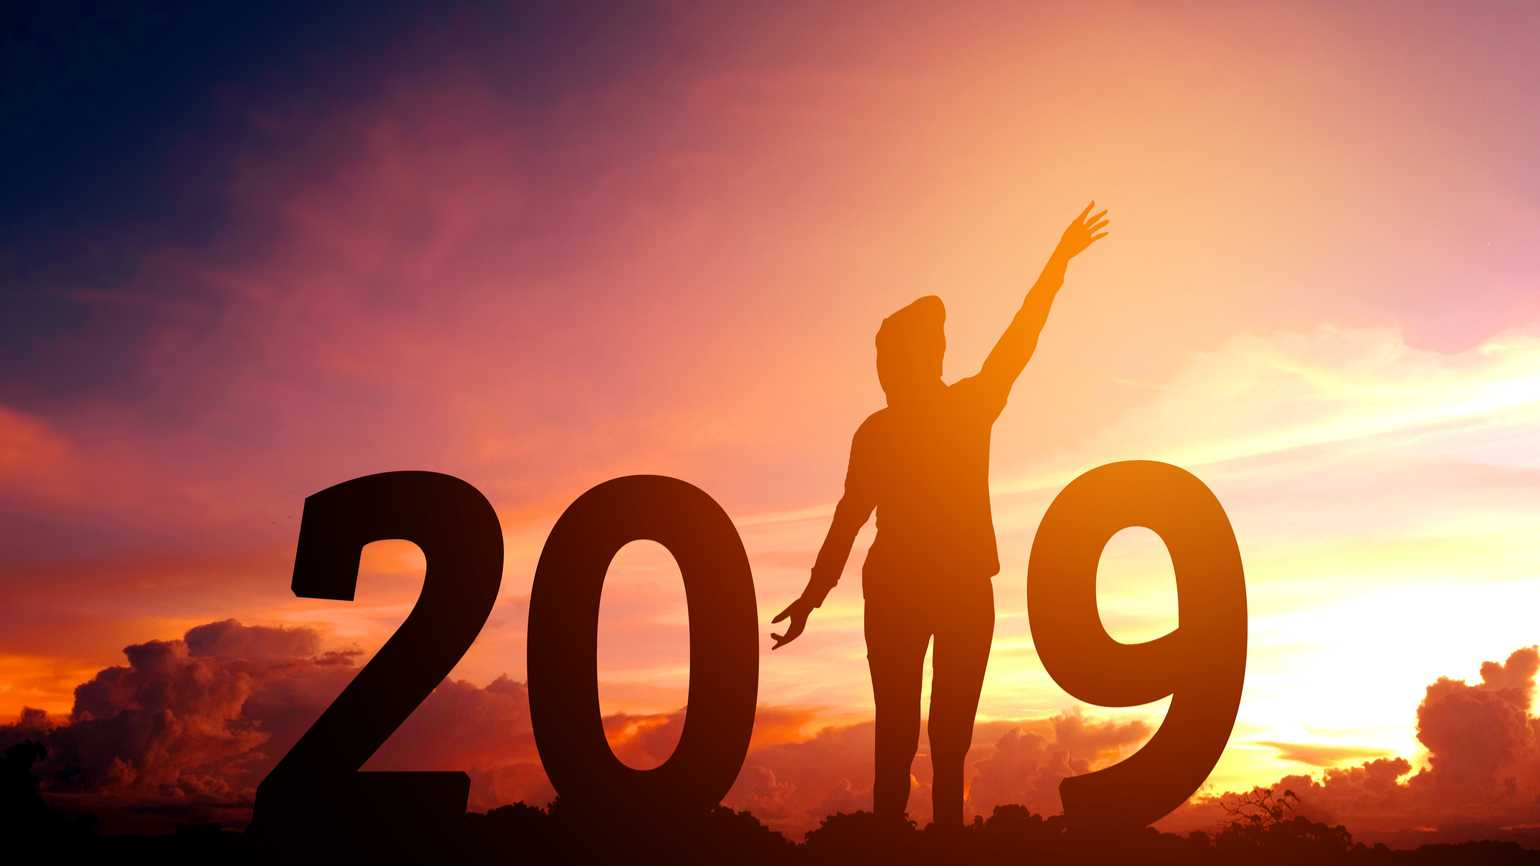 Welcome the New Year with joy, knowing that God's mercies will greet you every morning in 2019.